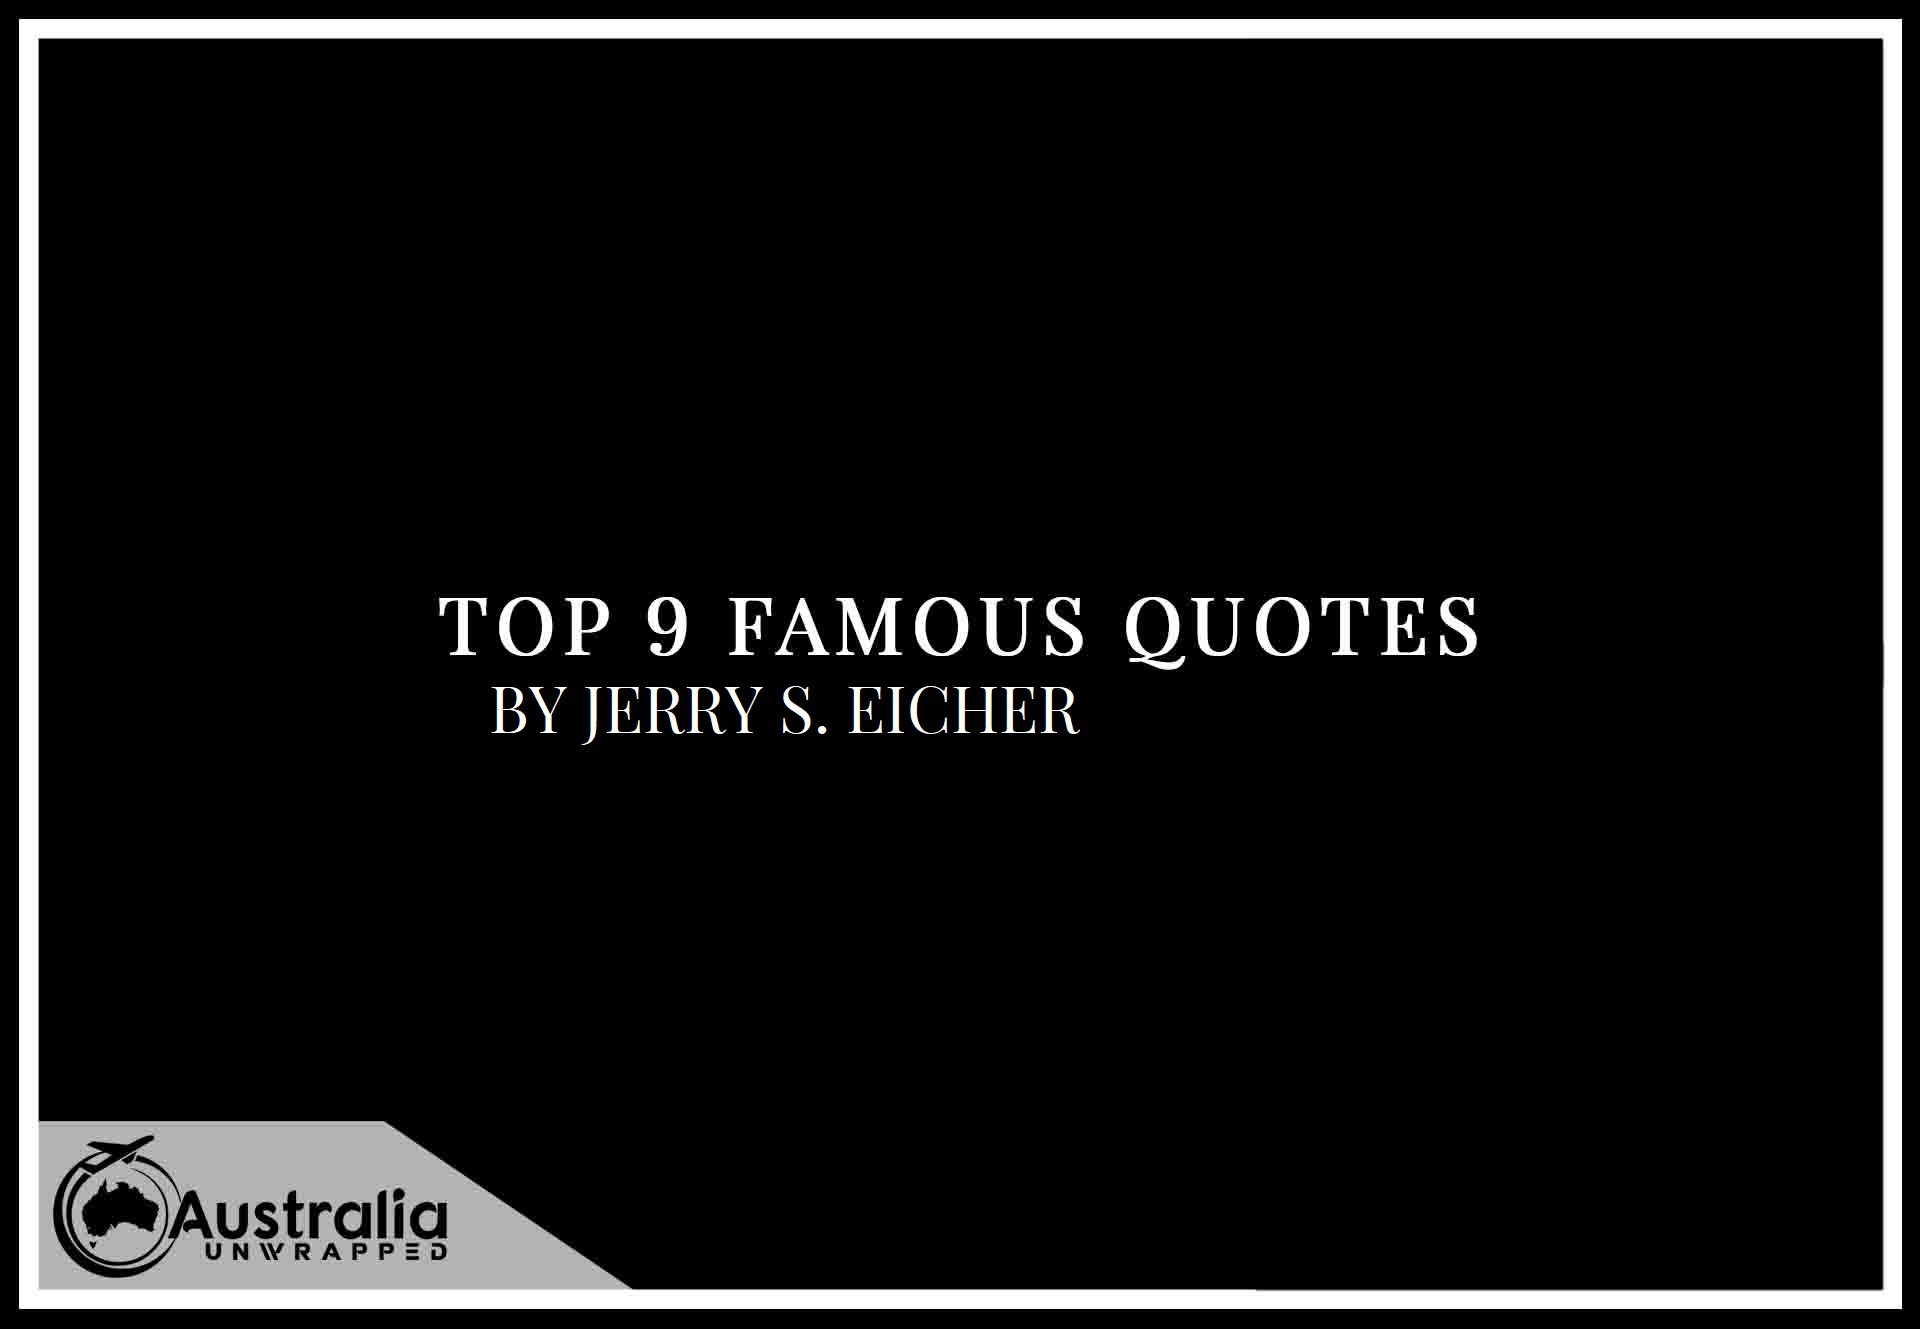 Top 9 Famous Quotes by Author Jerry S. Eicher